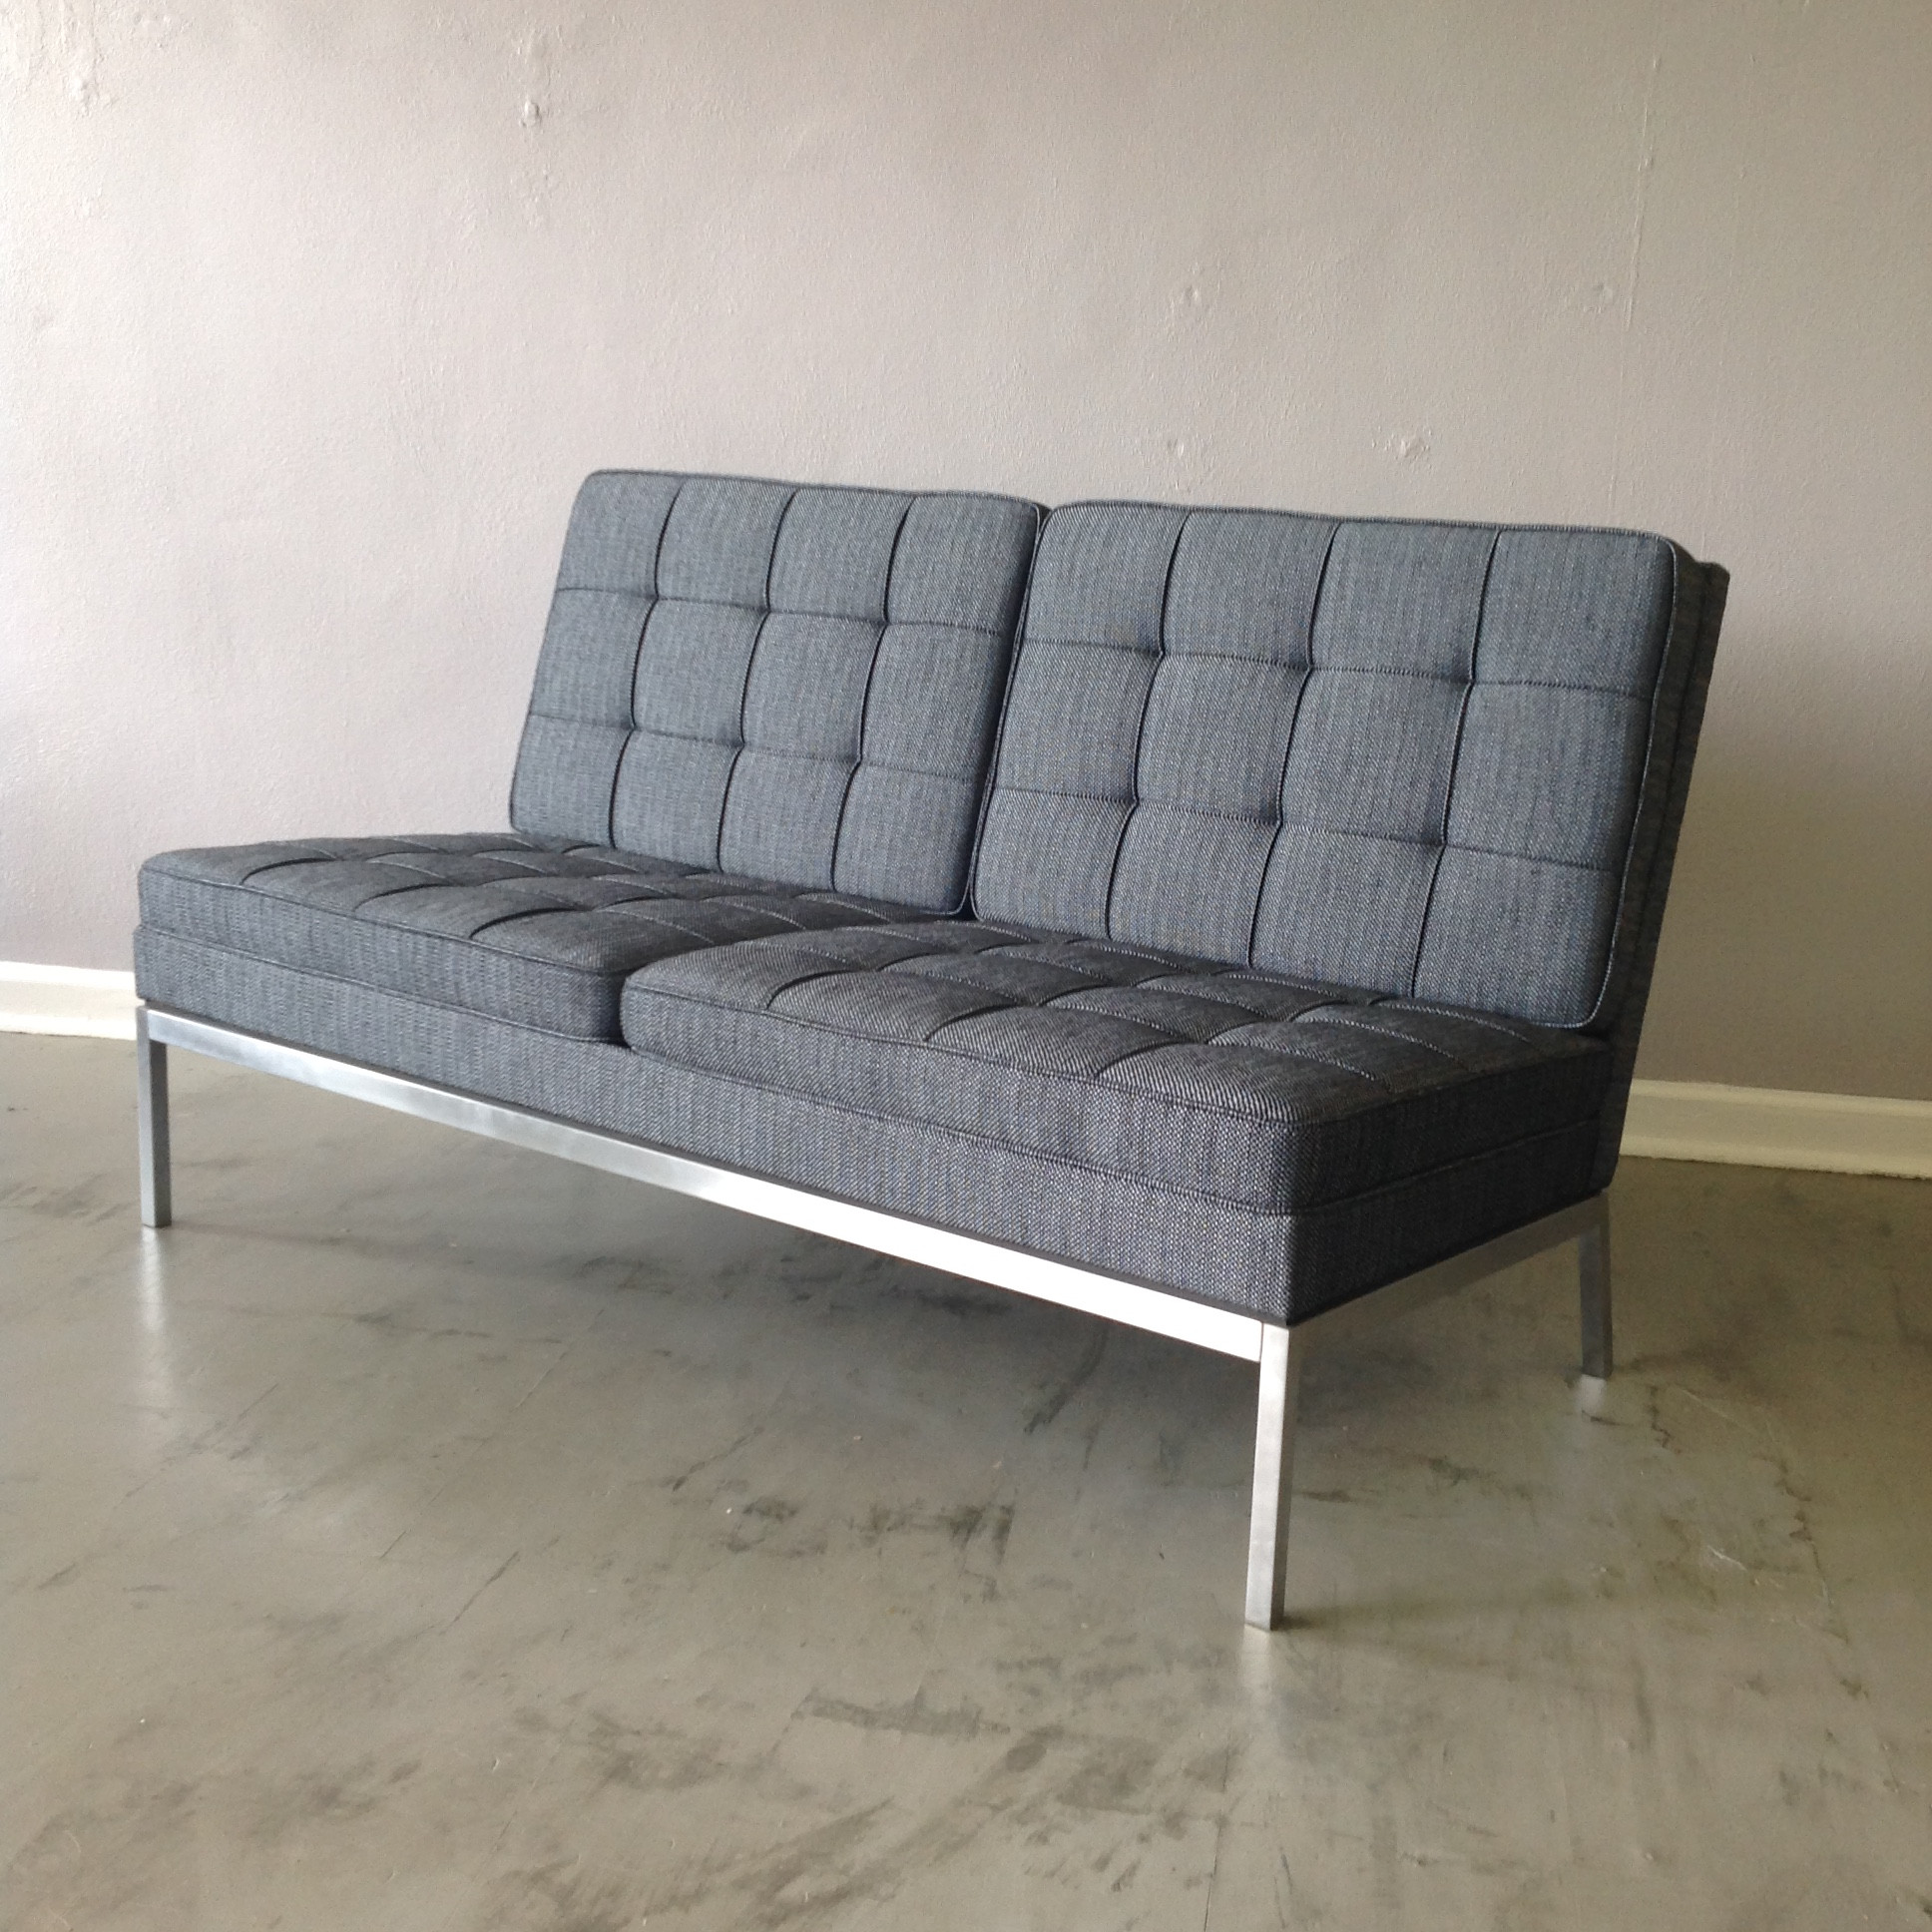 Mid Century Modern Furniture St Louis Missouri